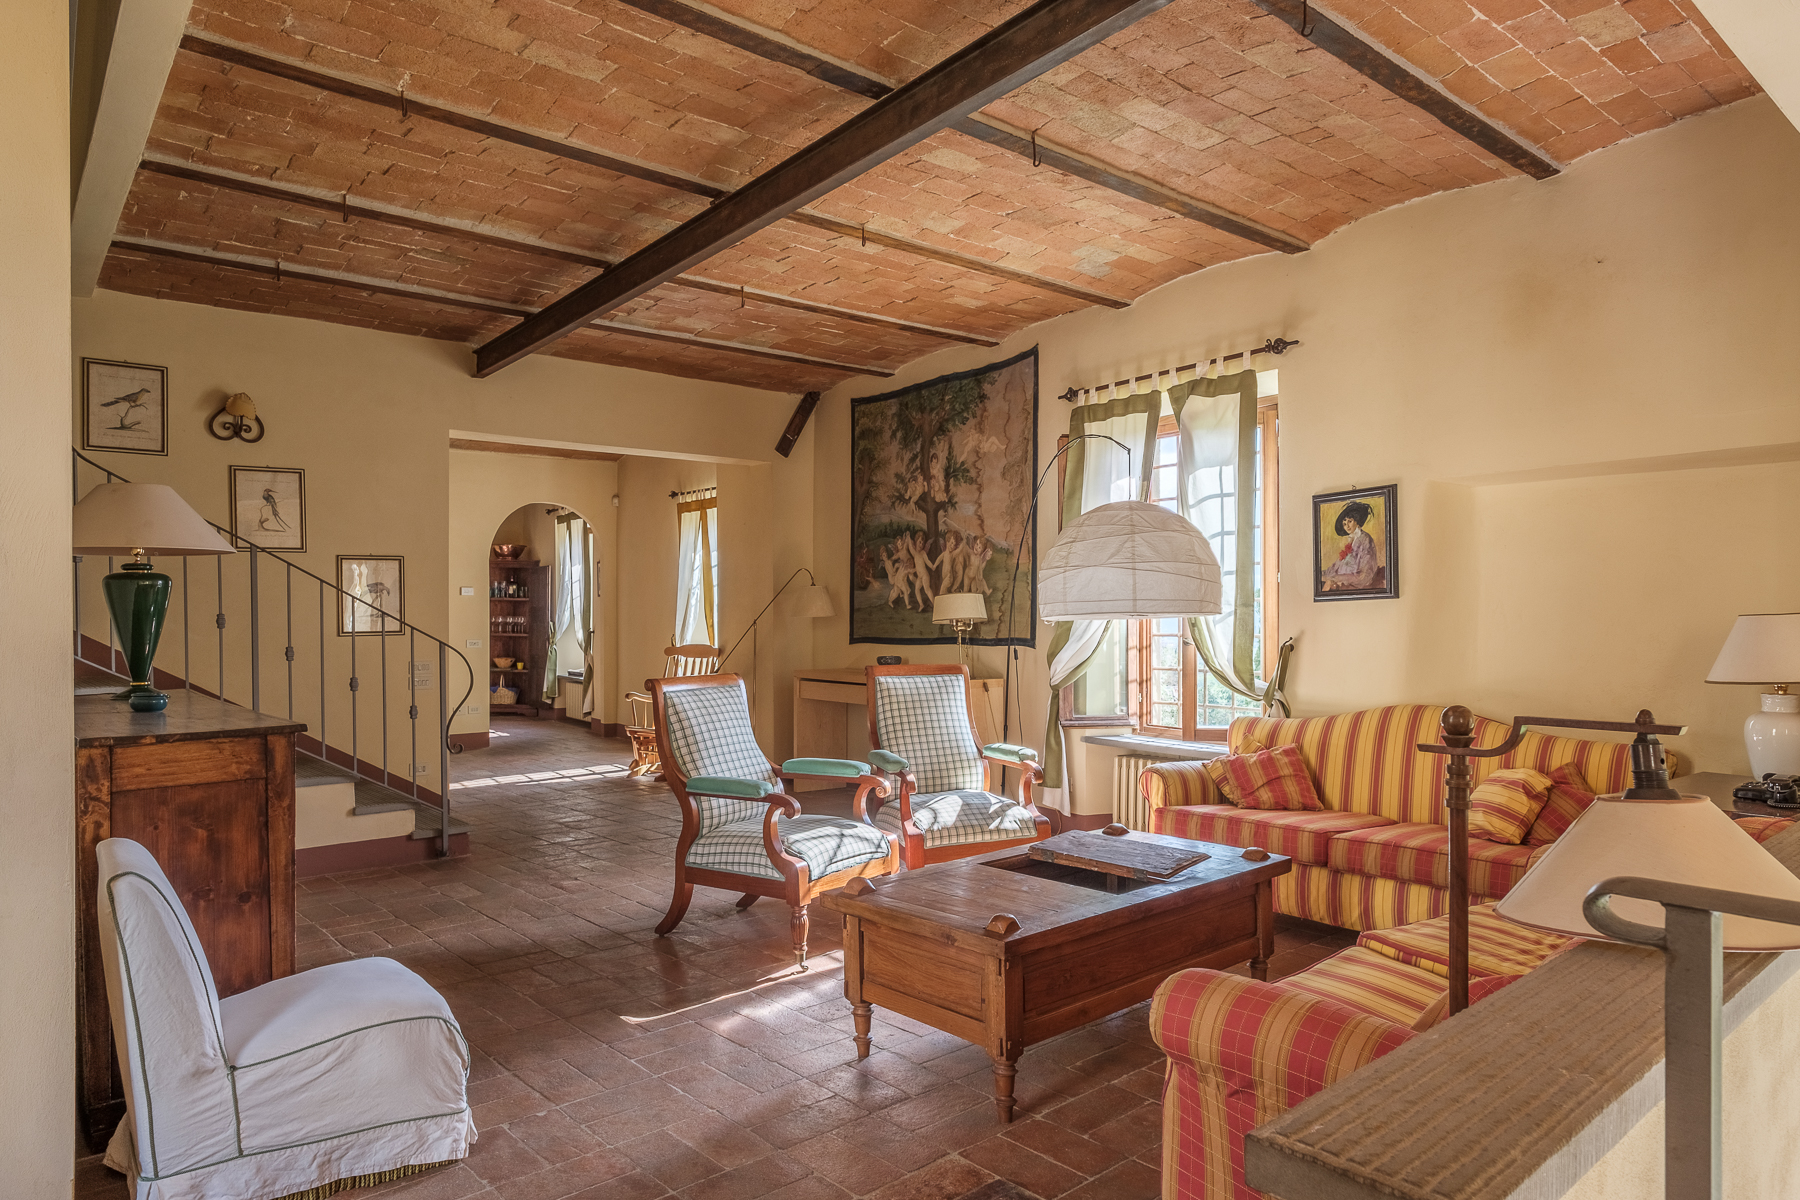 Apartment for Rent at Splendid apartment in villa Via Gentilino San Casciano In Val Di Pesa, Florence 50026 Italy